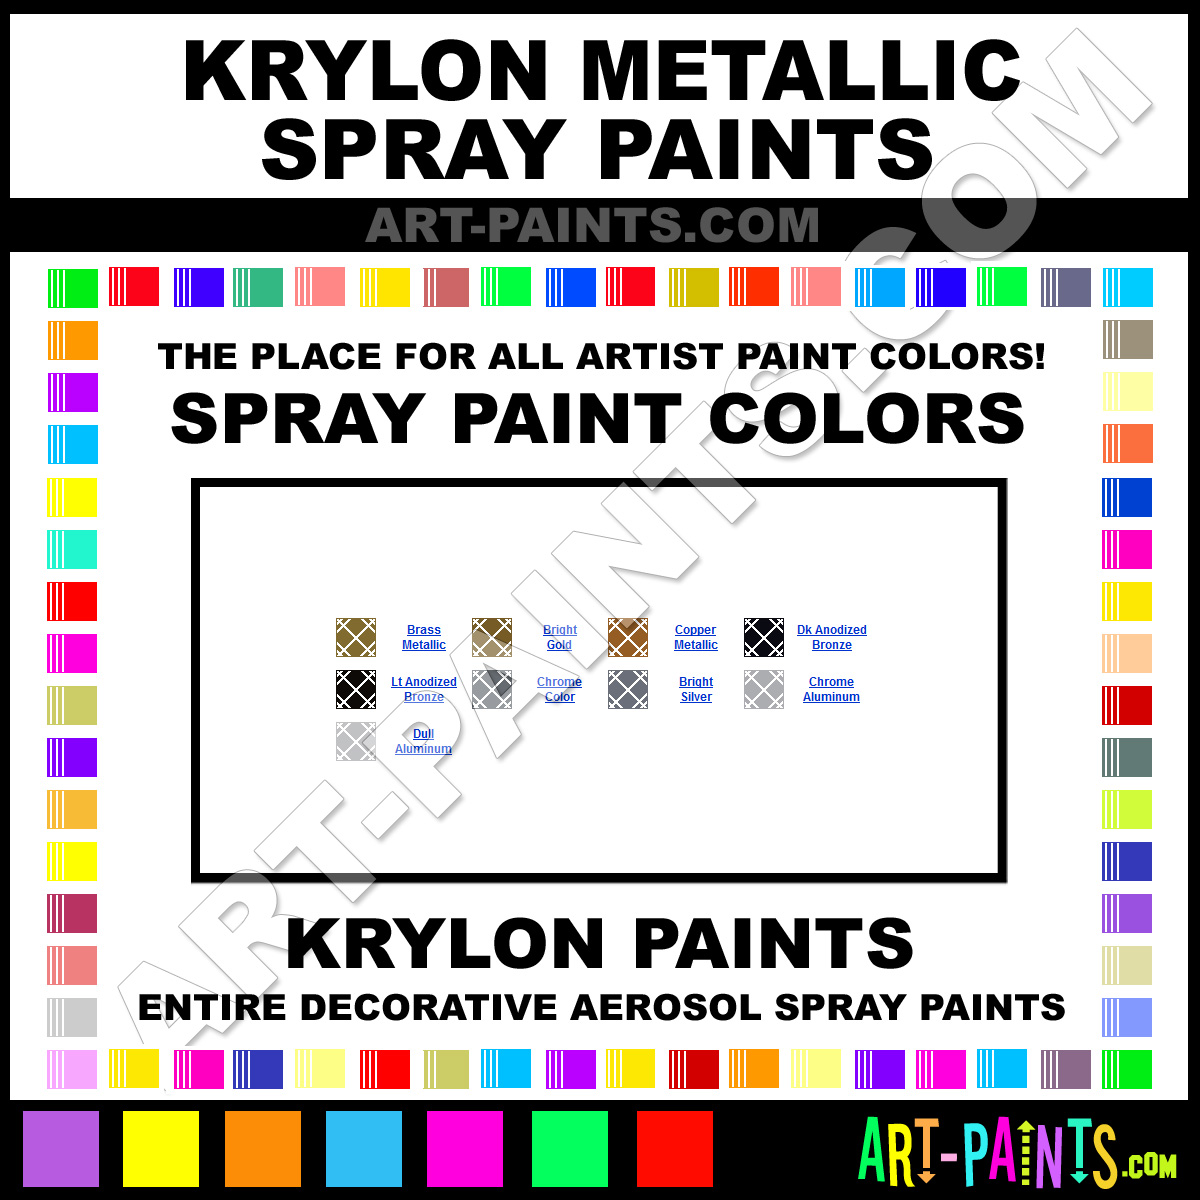 Chrome aluminum metallic spray paints 1404 chrome aluminum paint chrome aluminum color Metallic spray paint colors